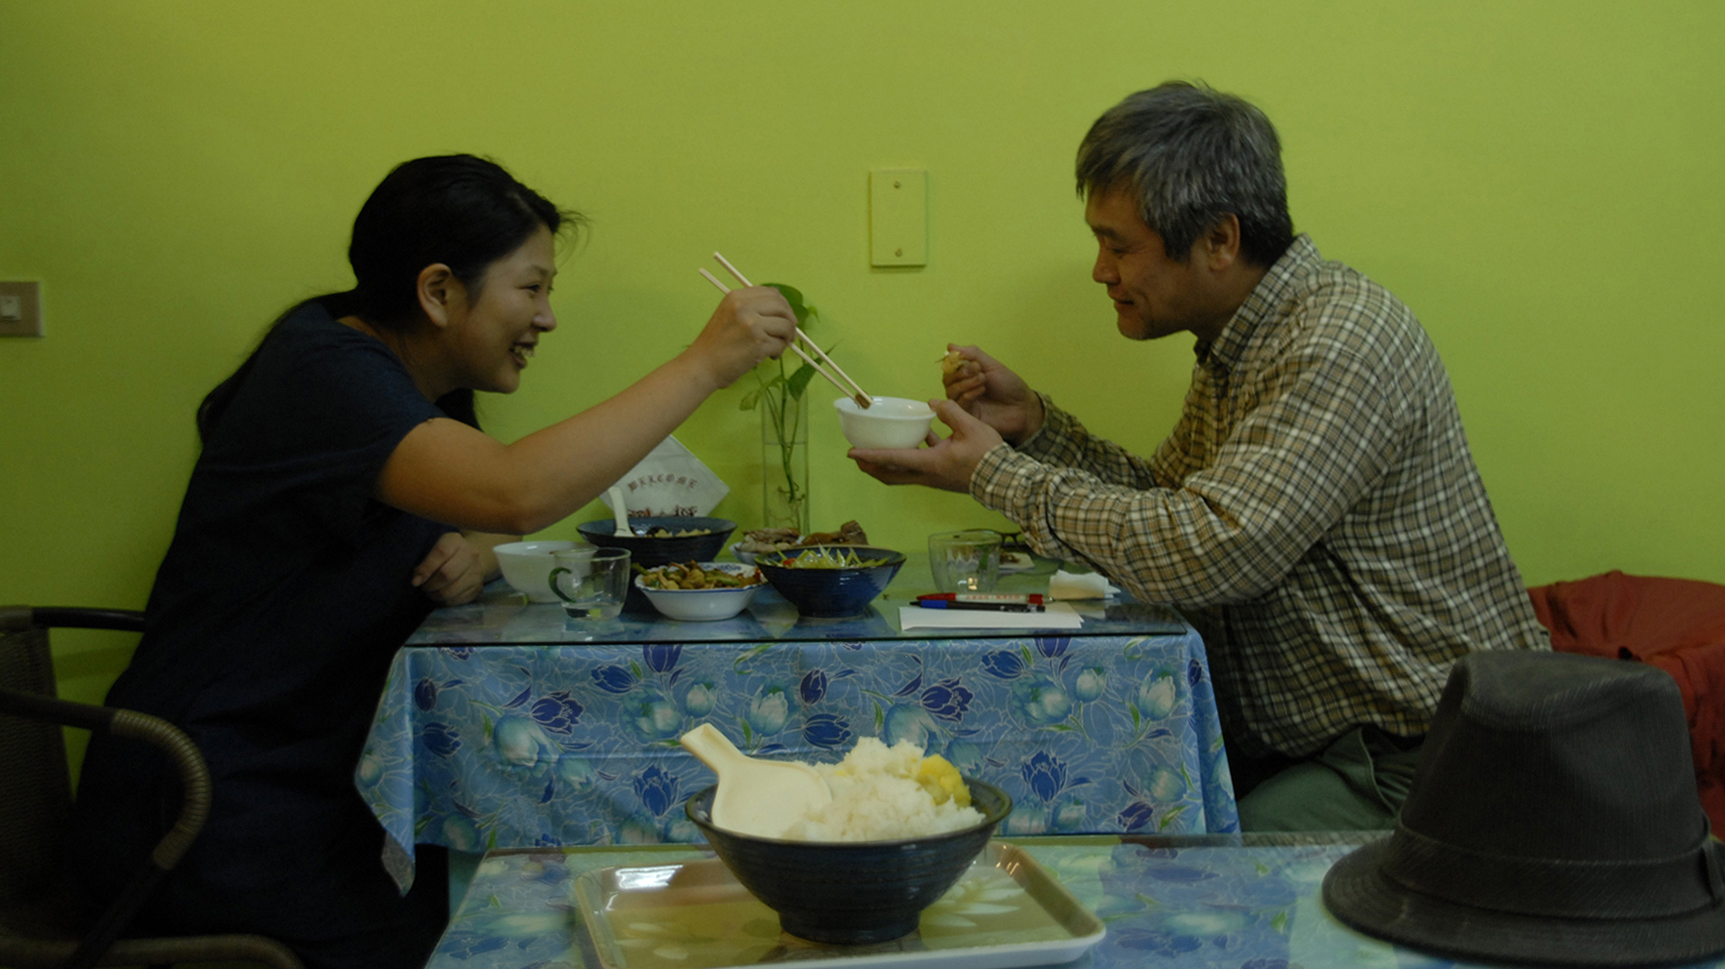 「お父さんと食事|Have a meal with FATHER」2014 video courtesy of TALION GALLERY, Tokyo